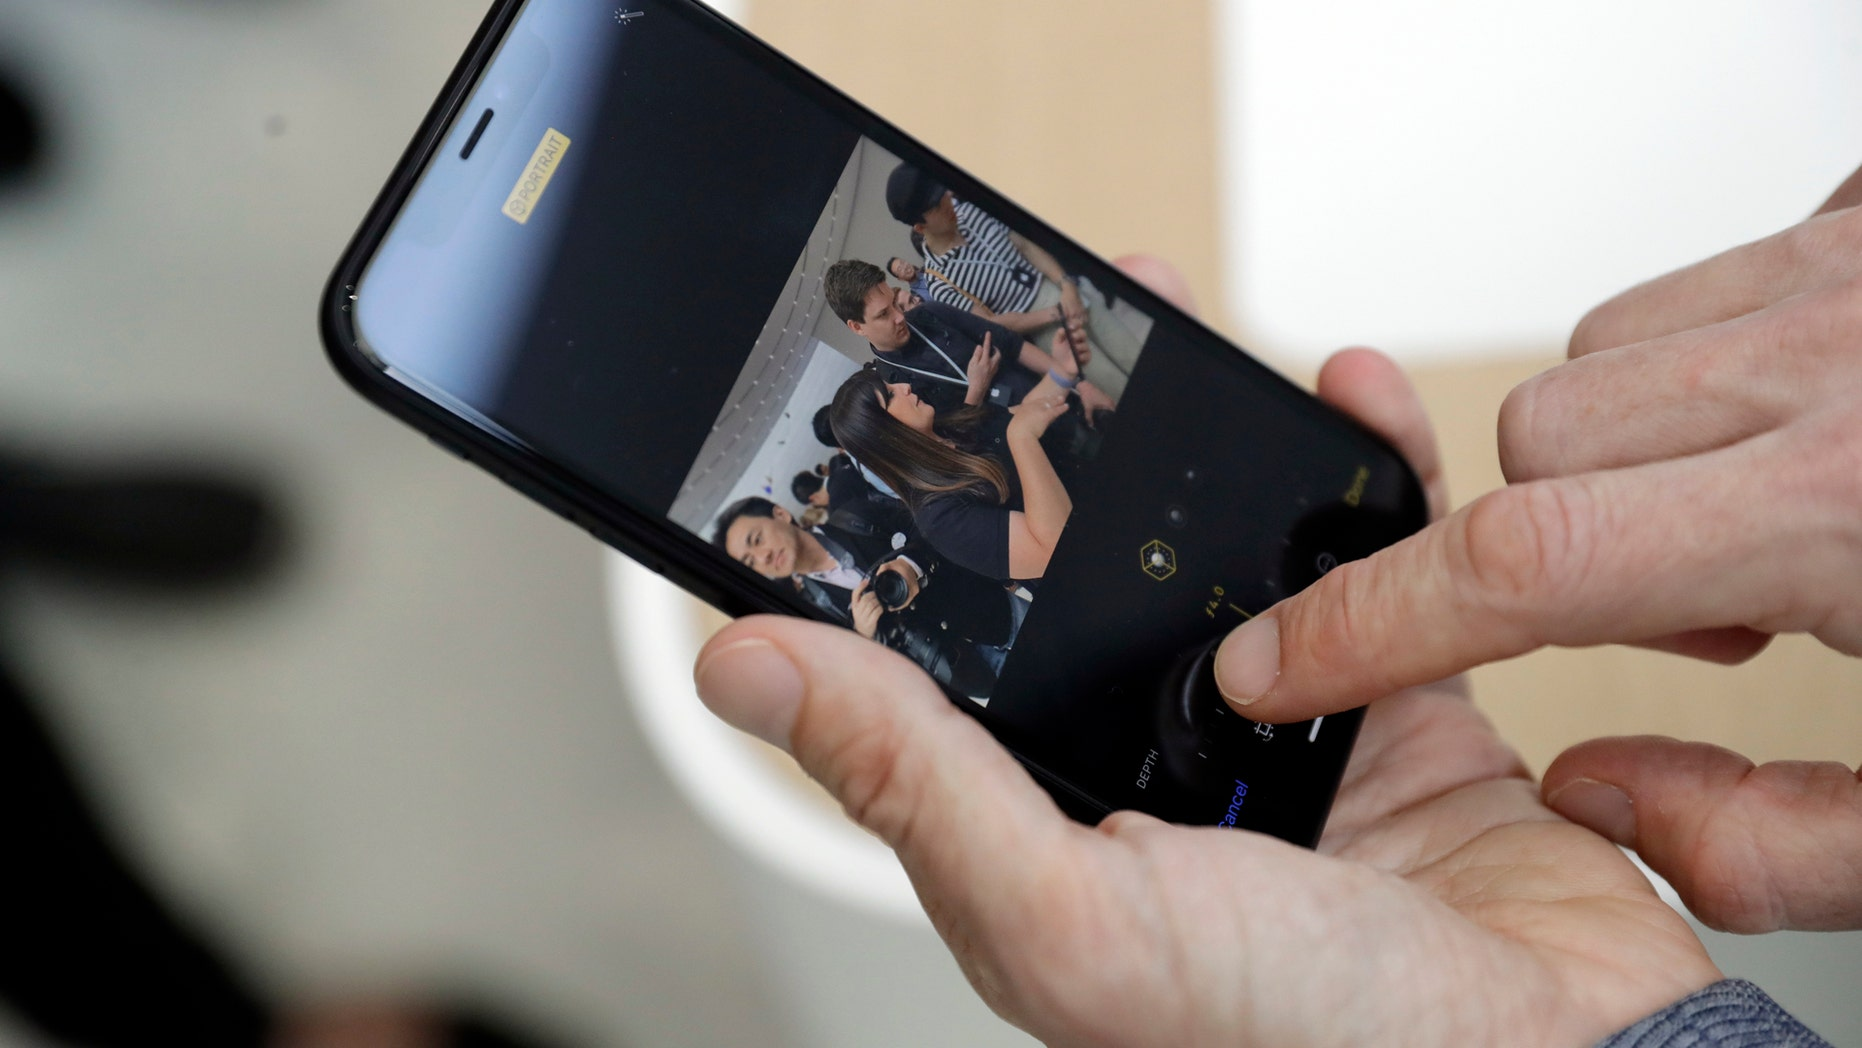 The new image control features appear on an iPhone XR during an event to announce new products Wednesday, September 12, 2018, in Cupertino, Calif. (AP Photo / Marcio Jose Sanchez)